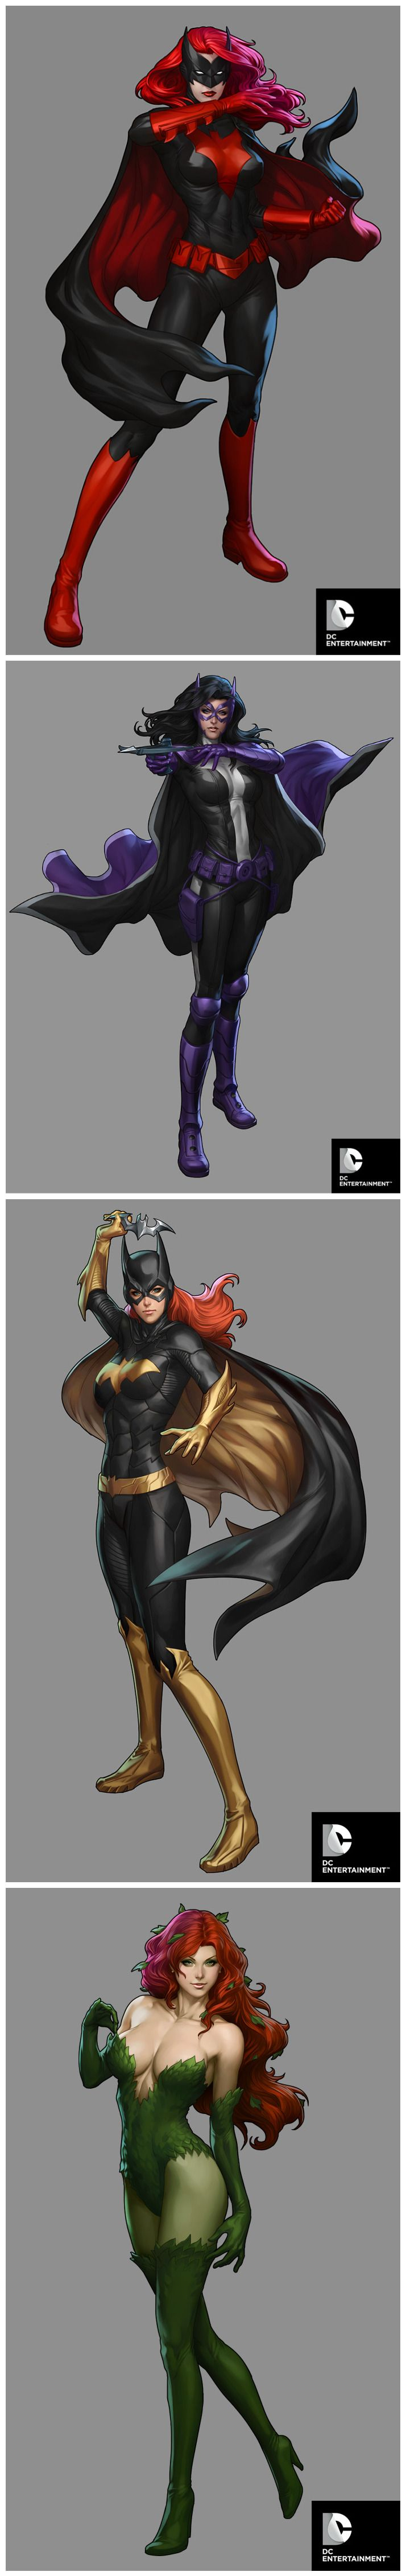 DC Comics Cover Girls